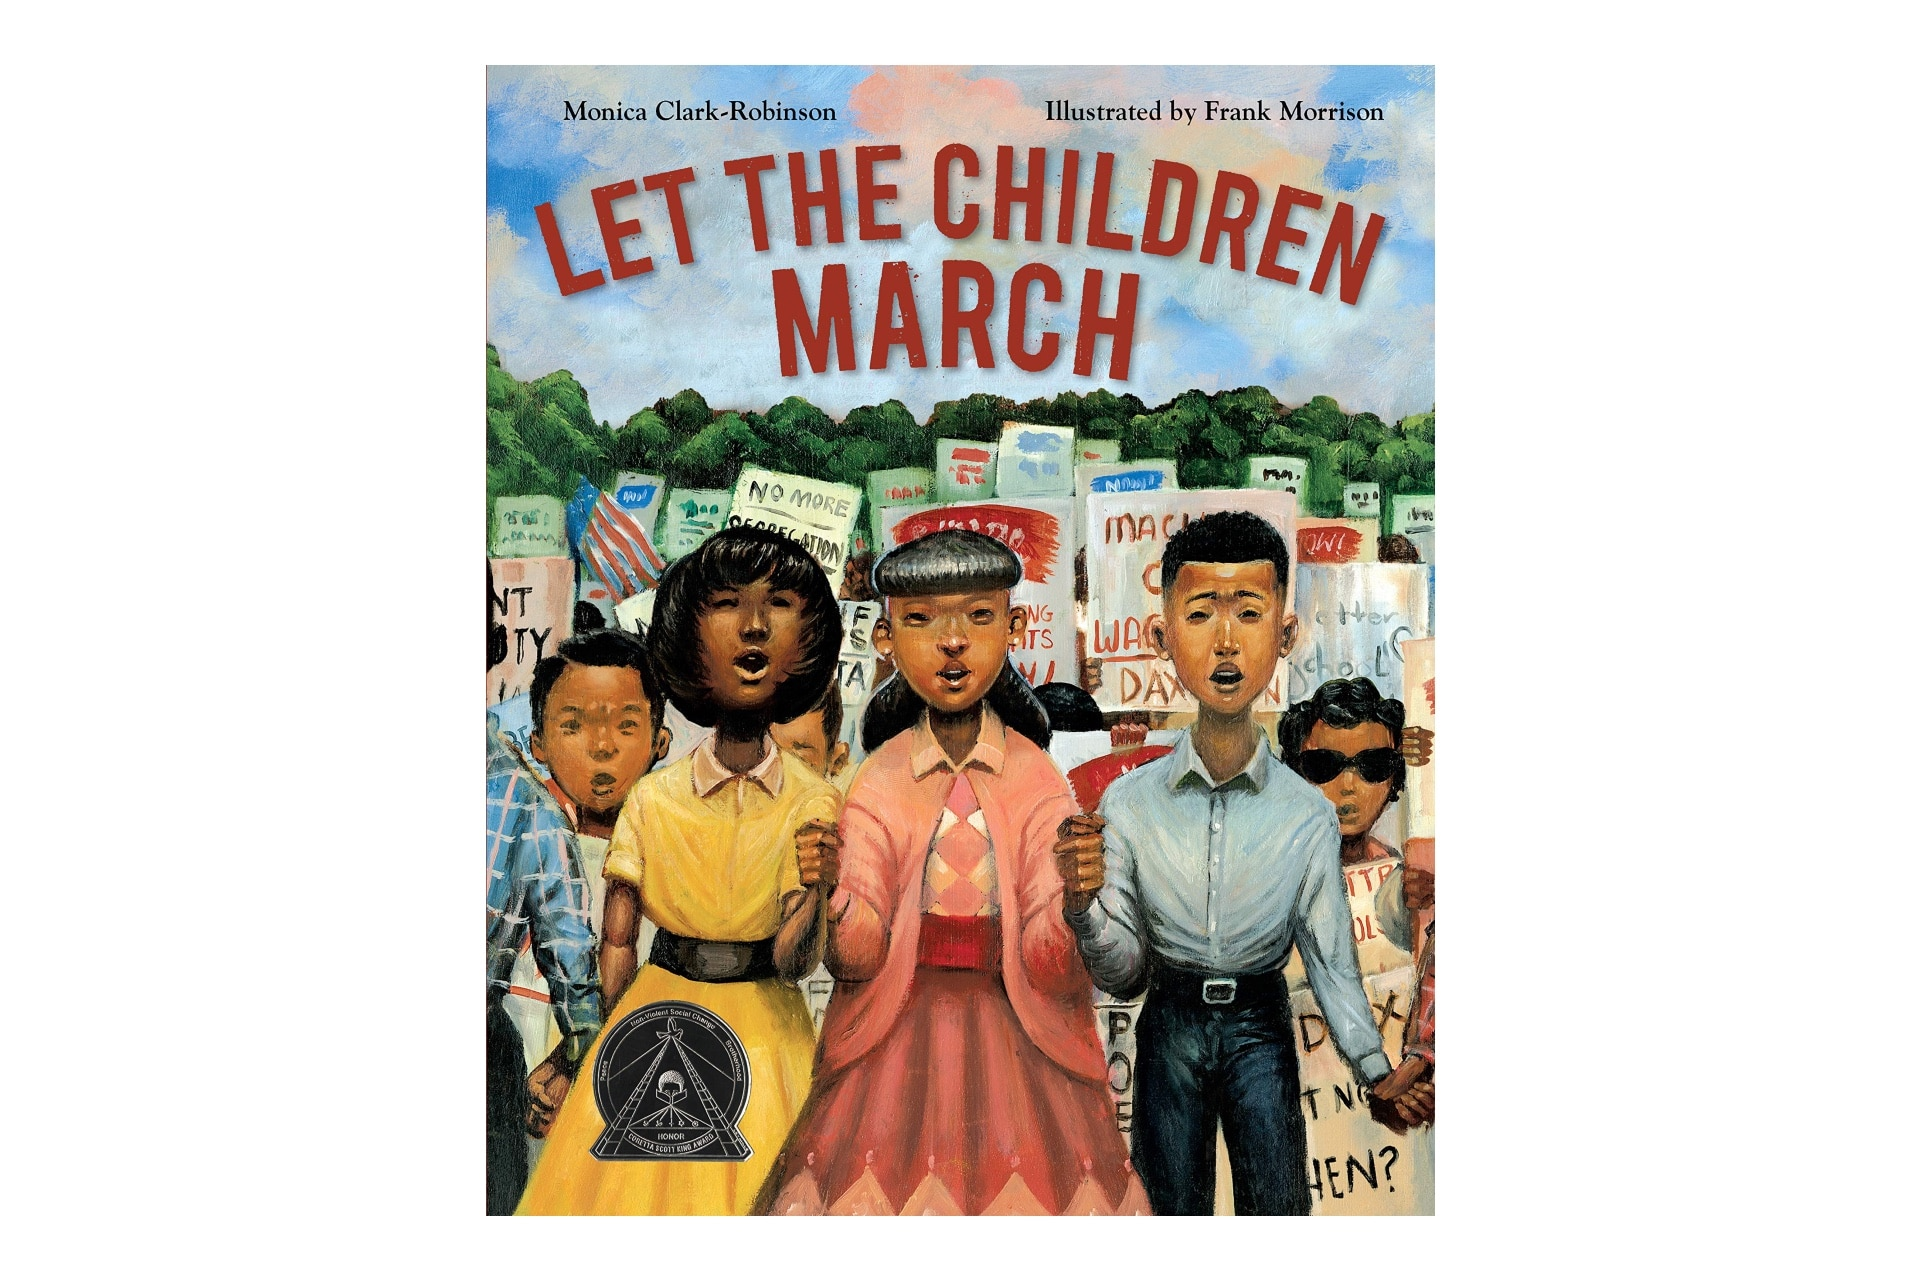 Book cover featuring Black children holding signs. The book is called Let the children march